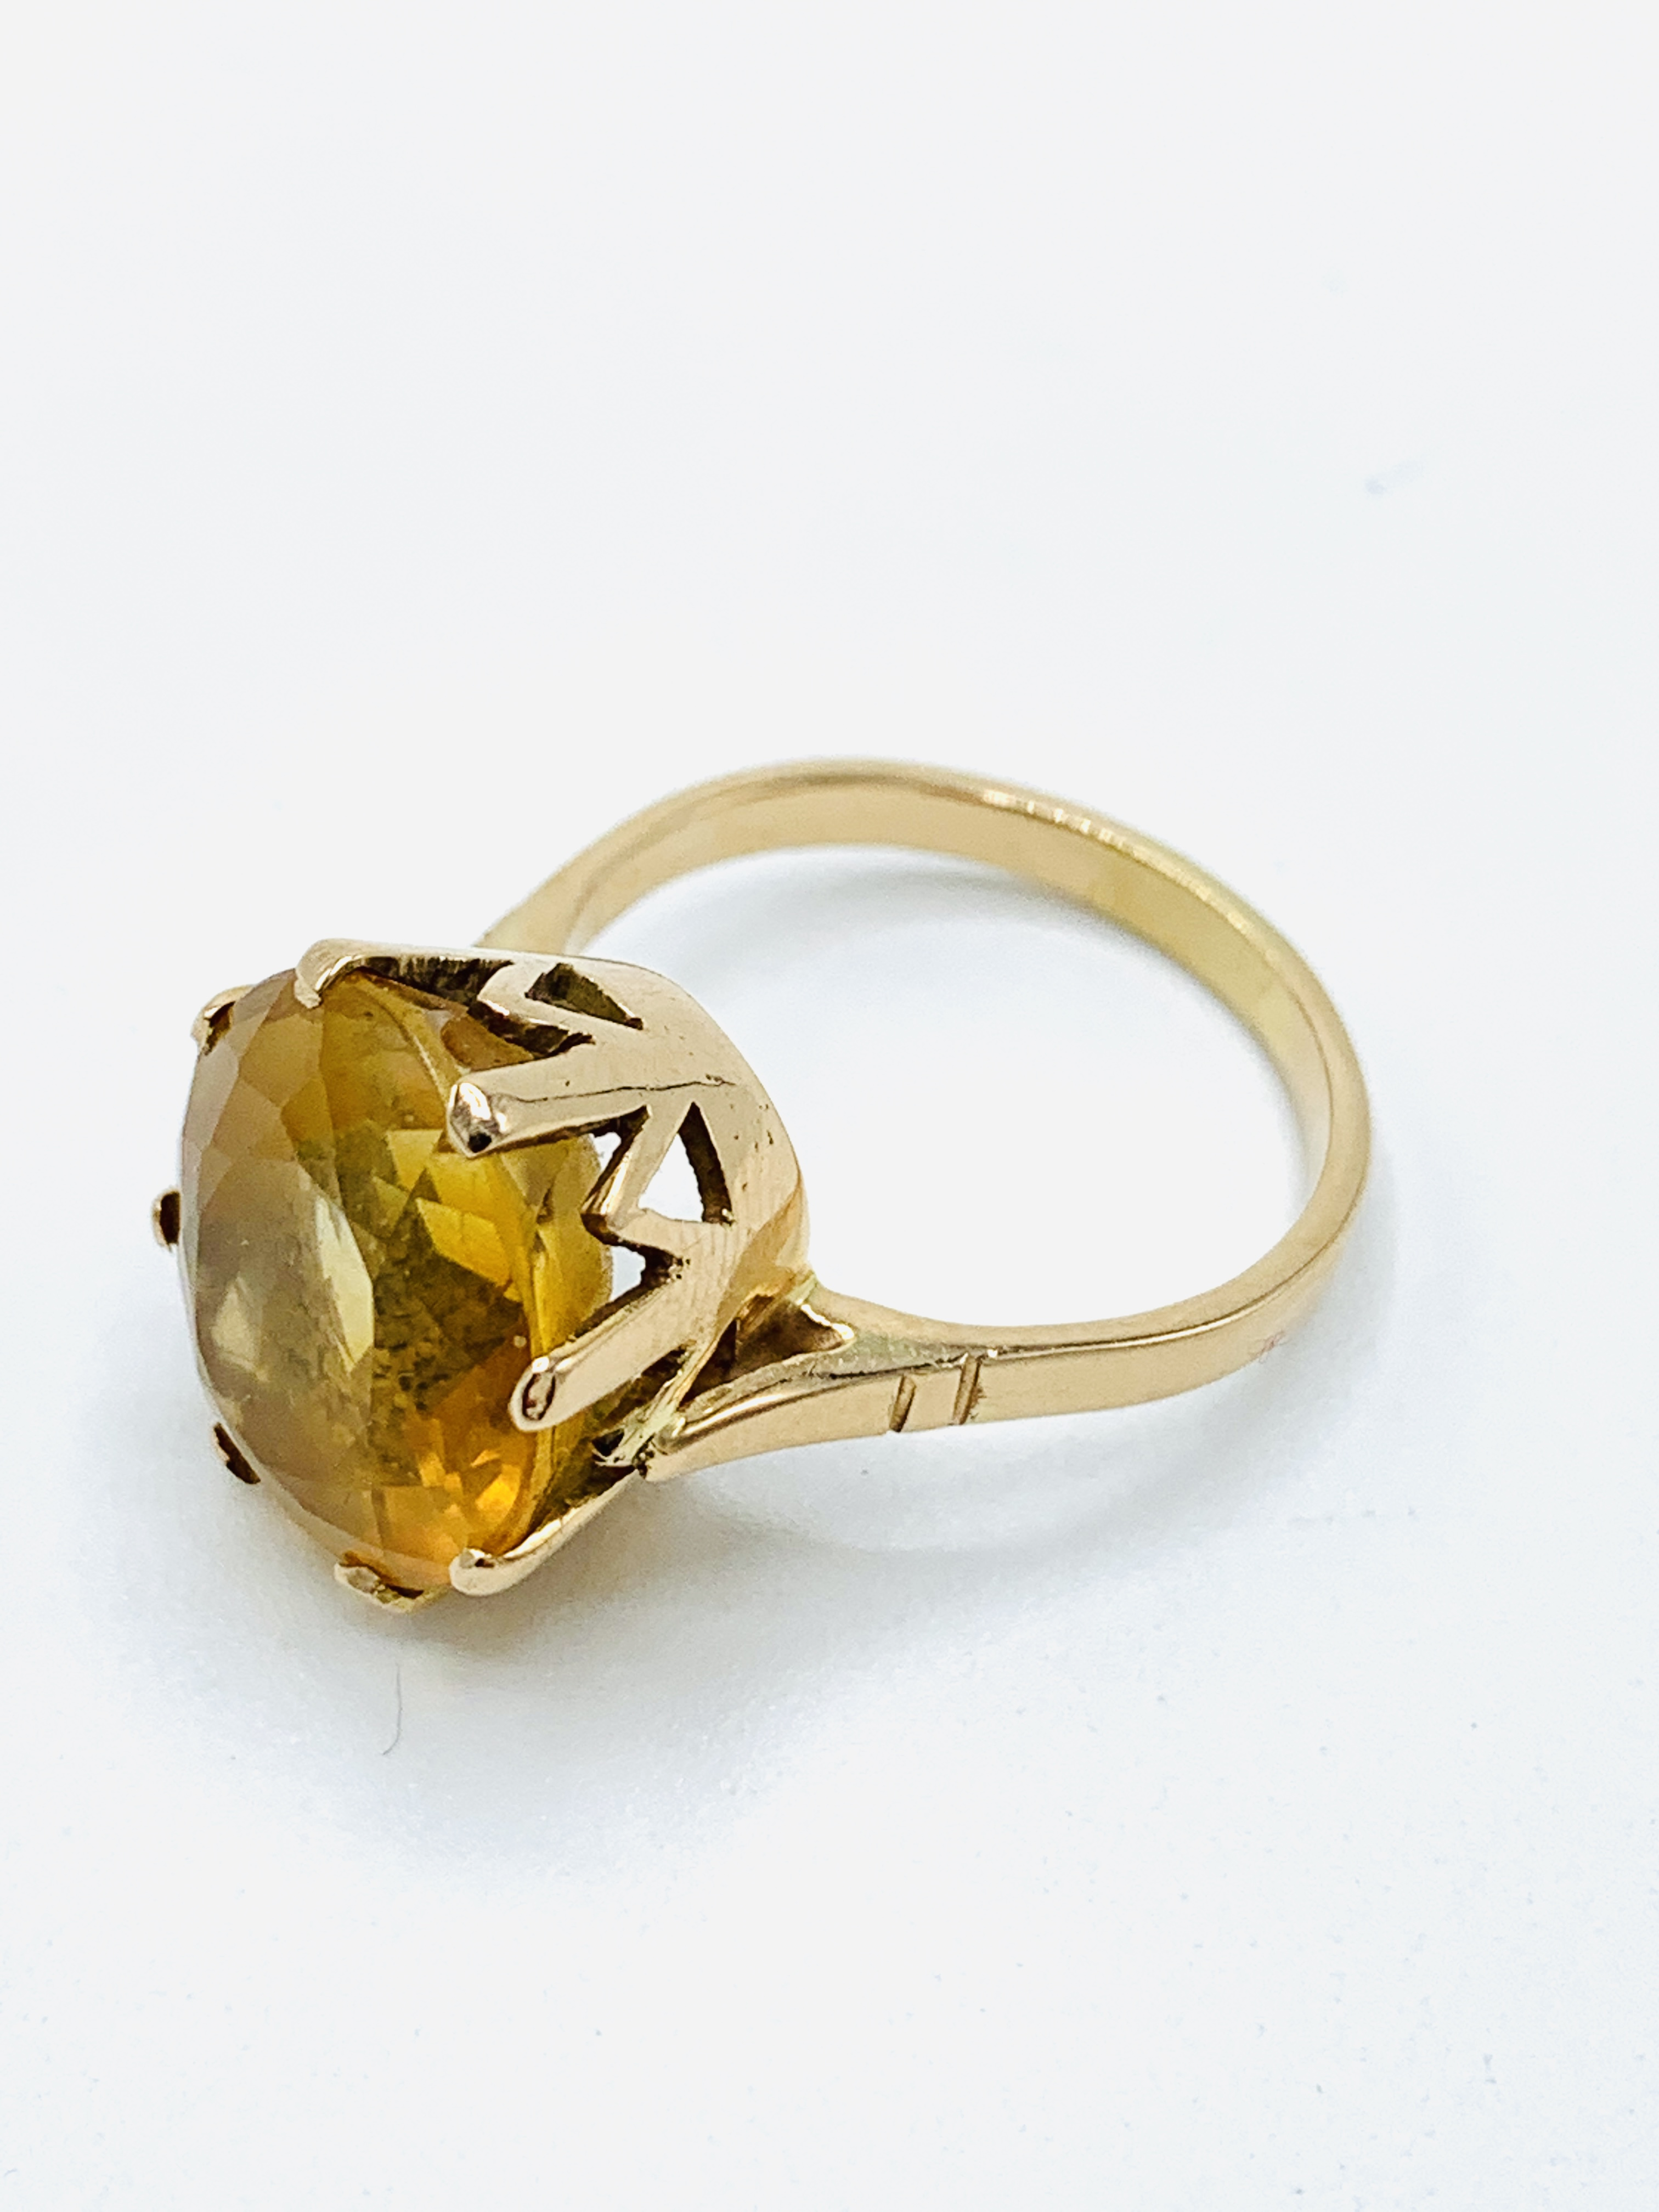 18ct gold and citrine ring and a yellow metal and yellow stone ring - Image 3 of 8